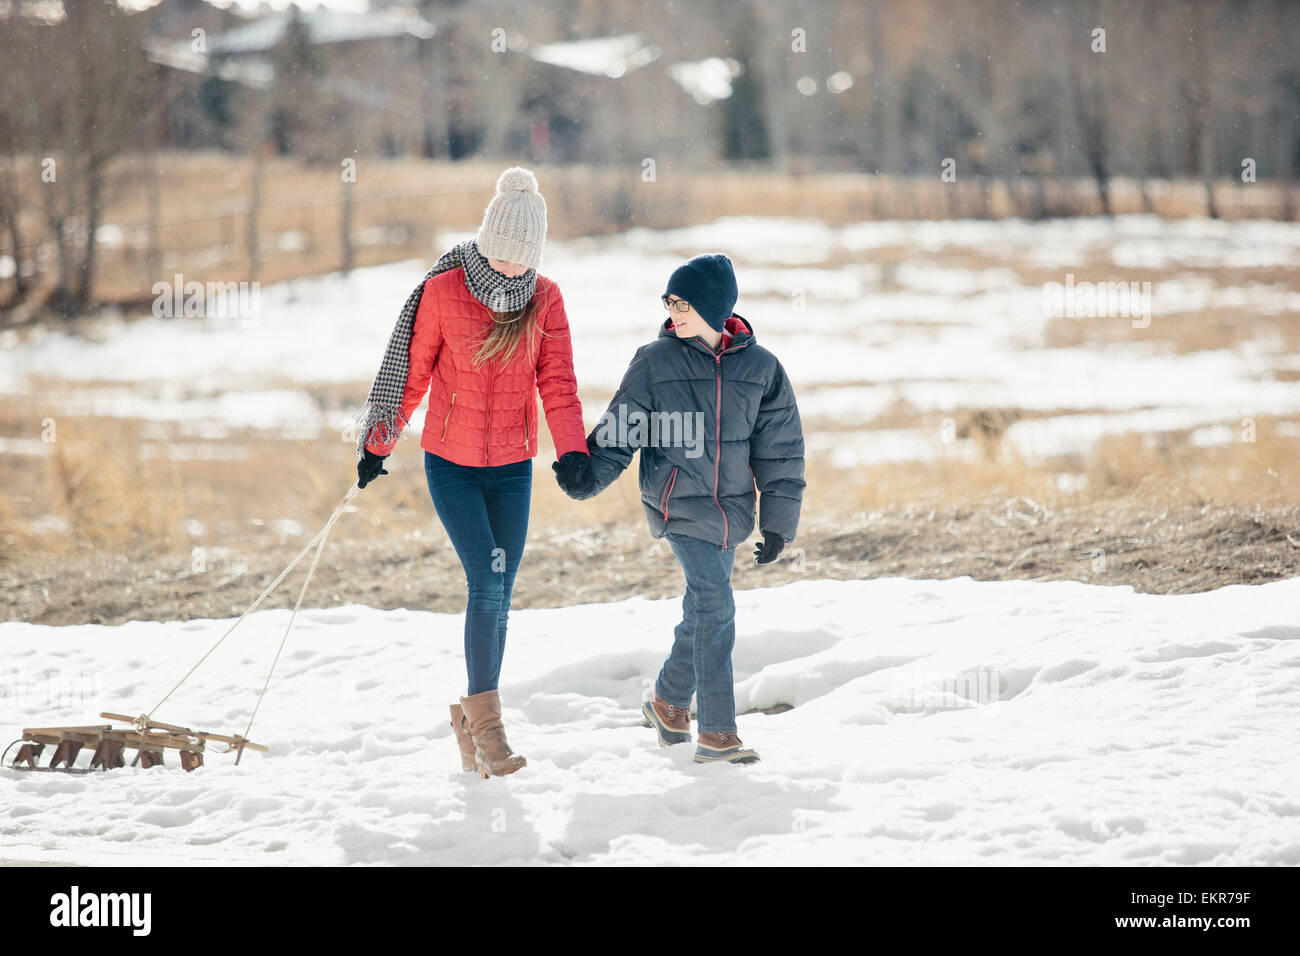 A brother and sister in the snow, one pulling a sledge. - Stock Image